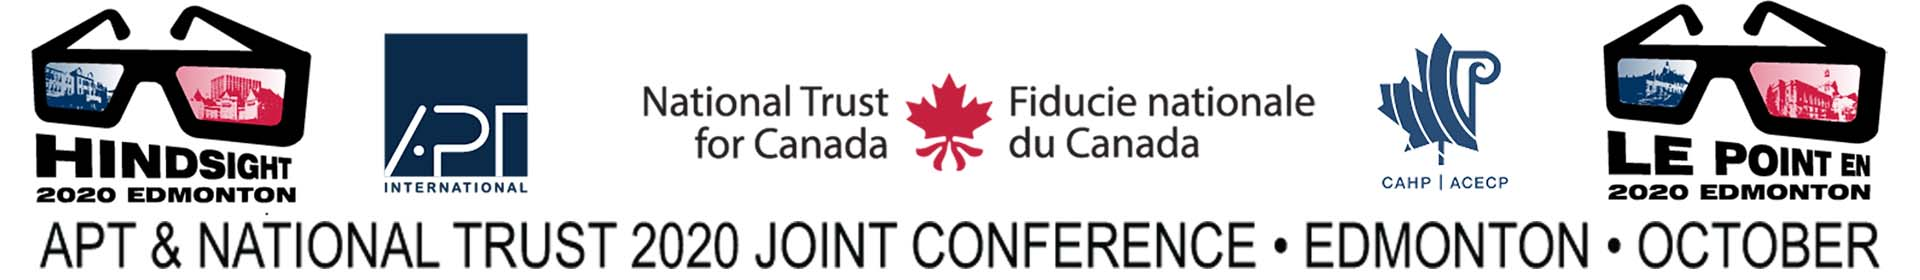 APT - National Trust Joint Conference 2020 Event Banner